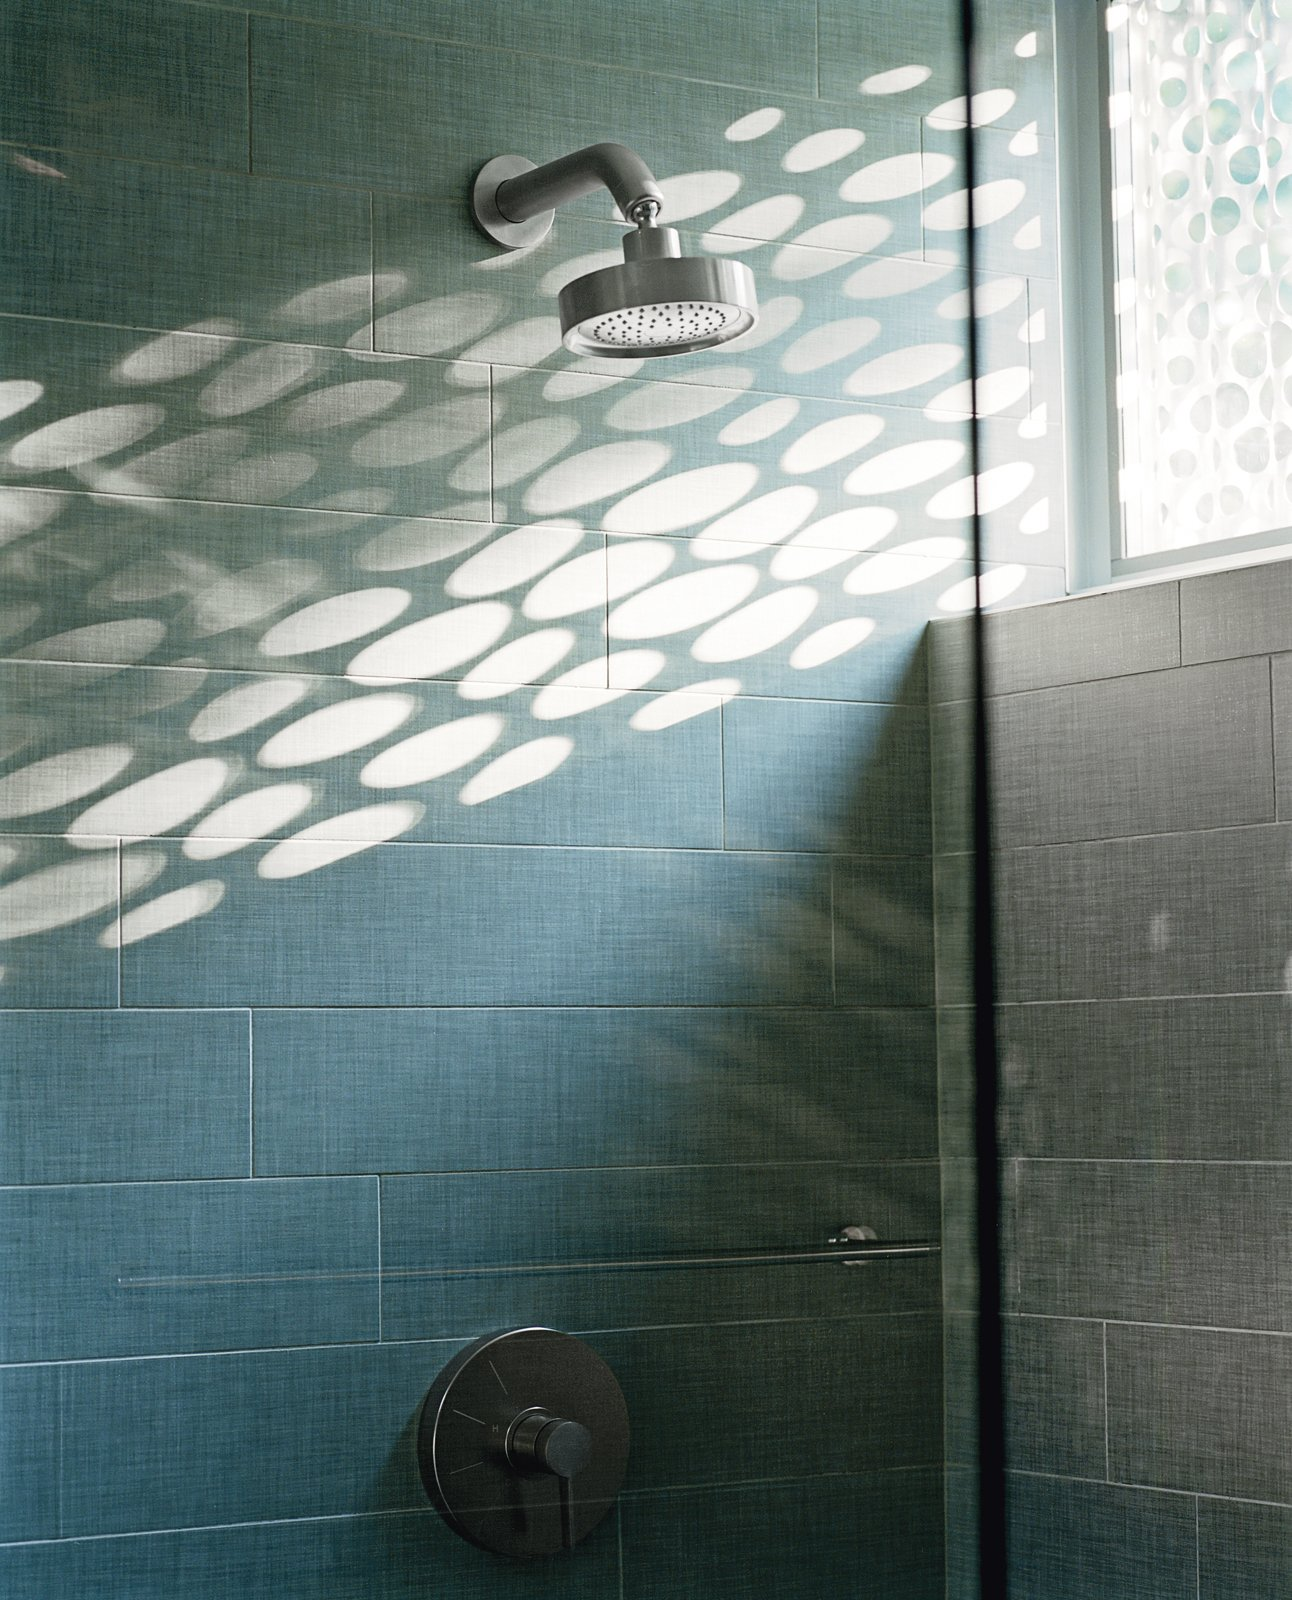 Bath Room and Ceramic Tile Wall  Photos from New Grass Roots